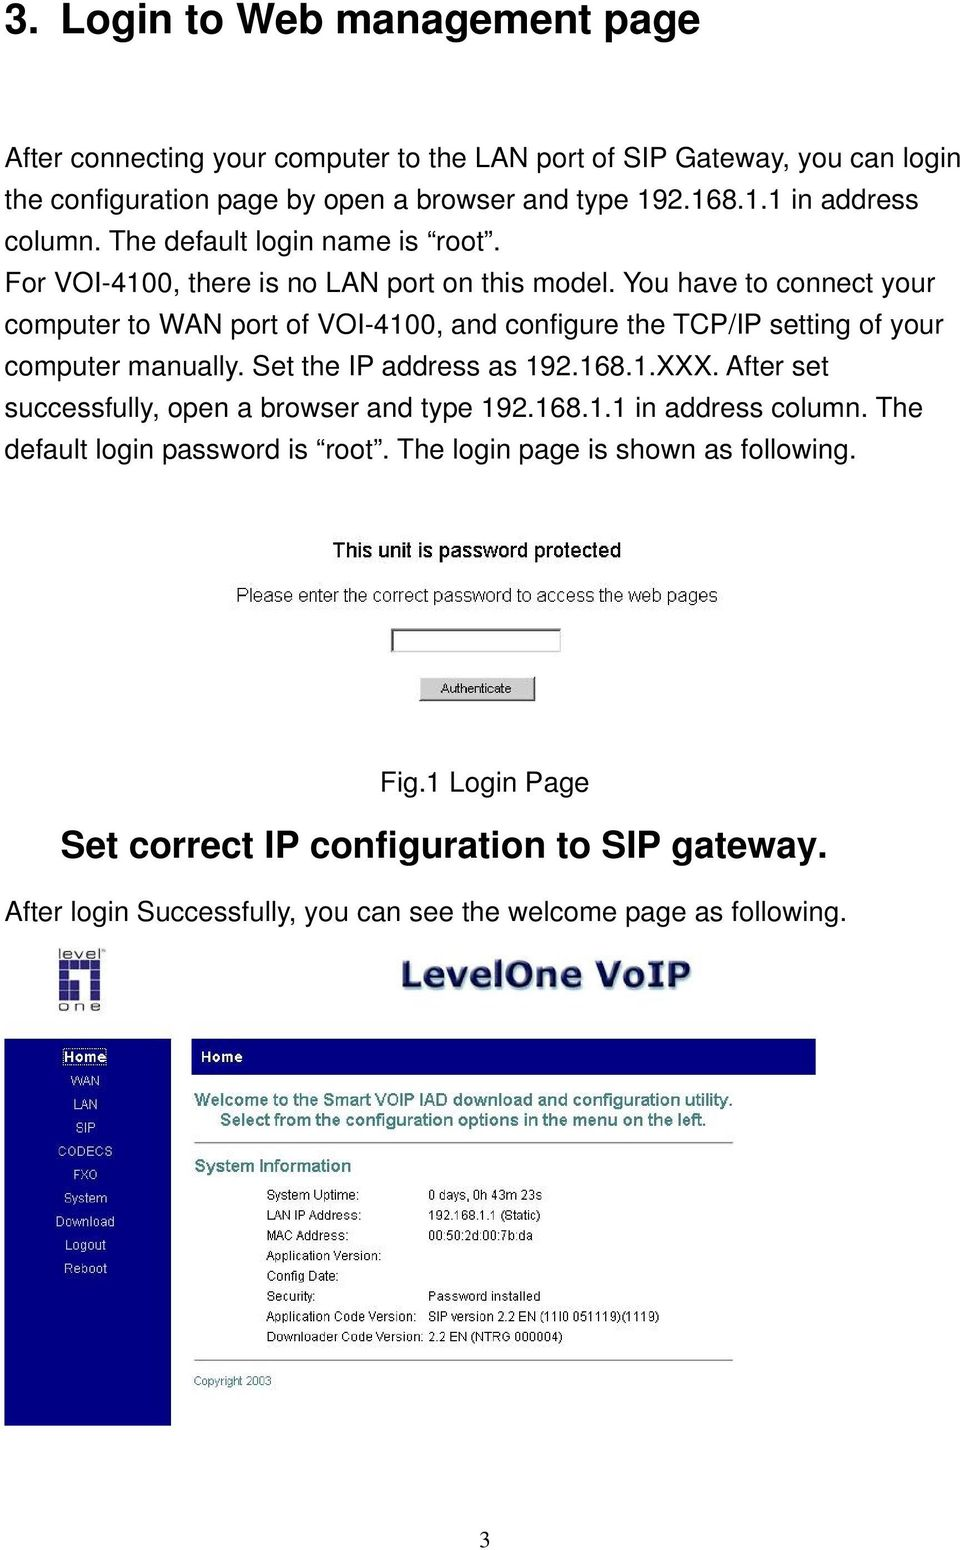 You have to connect your computer to WAN port of VOI-4100, and configure the TCP/IP setting of your computer manually. Set the IP address as 192.168.1.XXX.